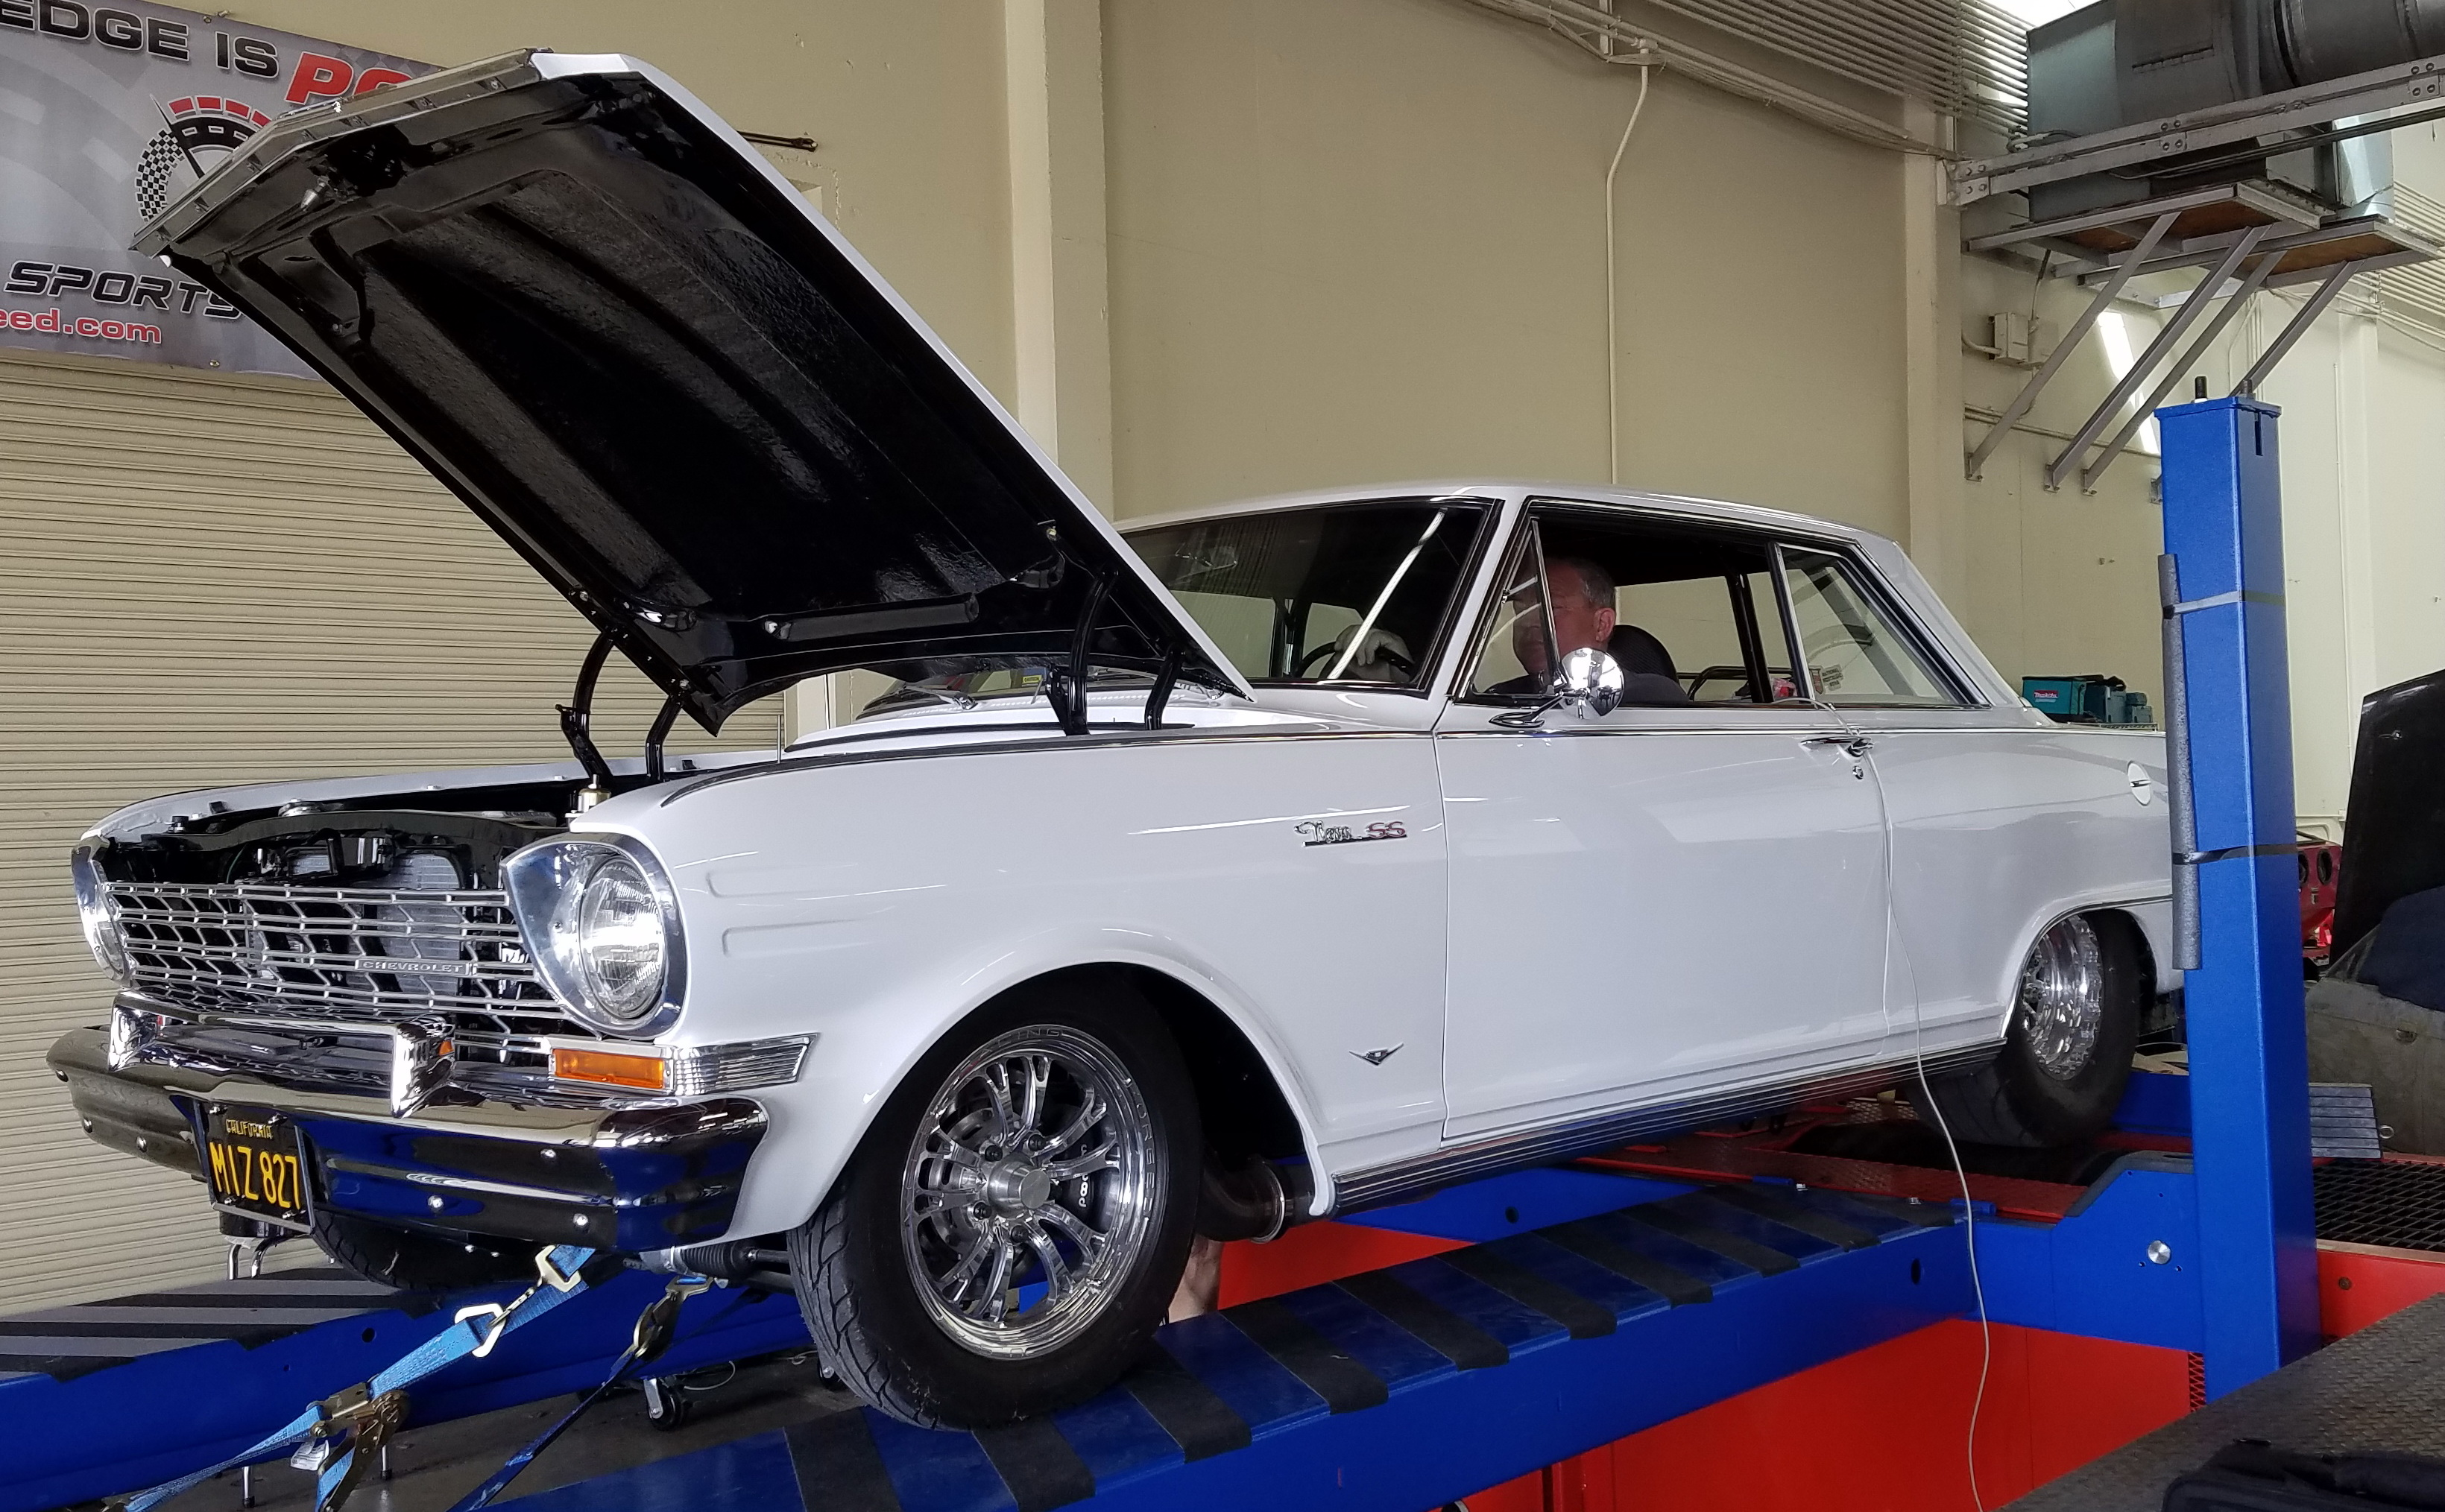 Chev-II on dyno 2